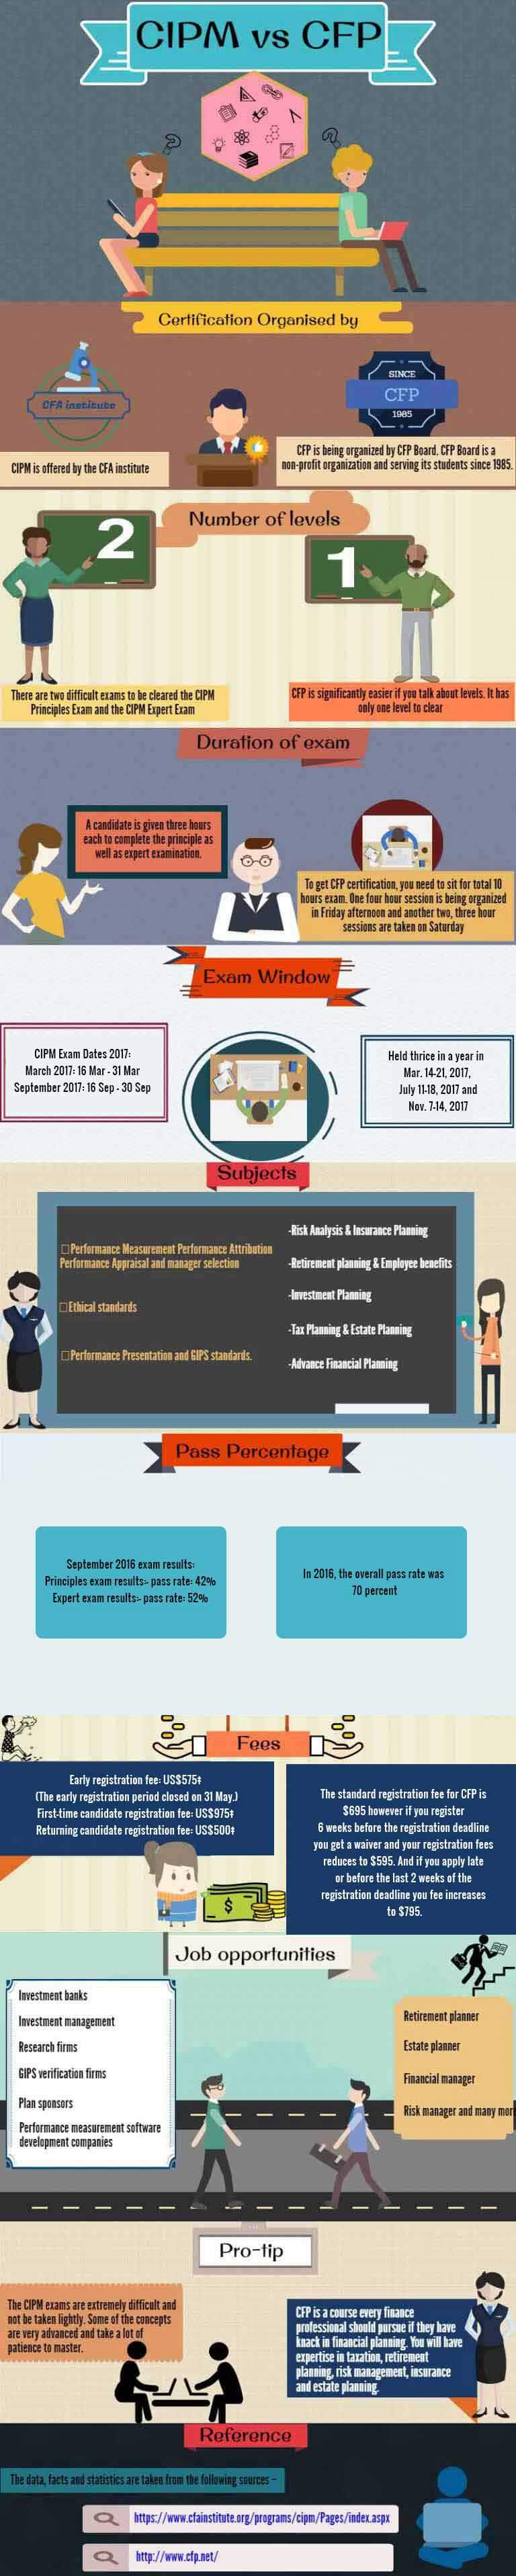 Cipm vs cfp which of these career is for you wallstreetmojo cipm vs cfp summary xflitez Image collections